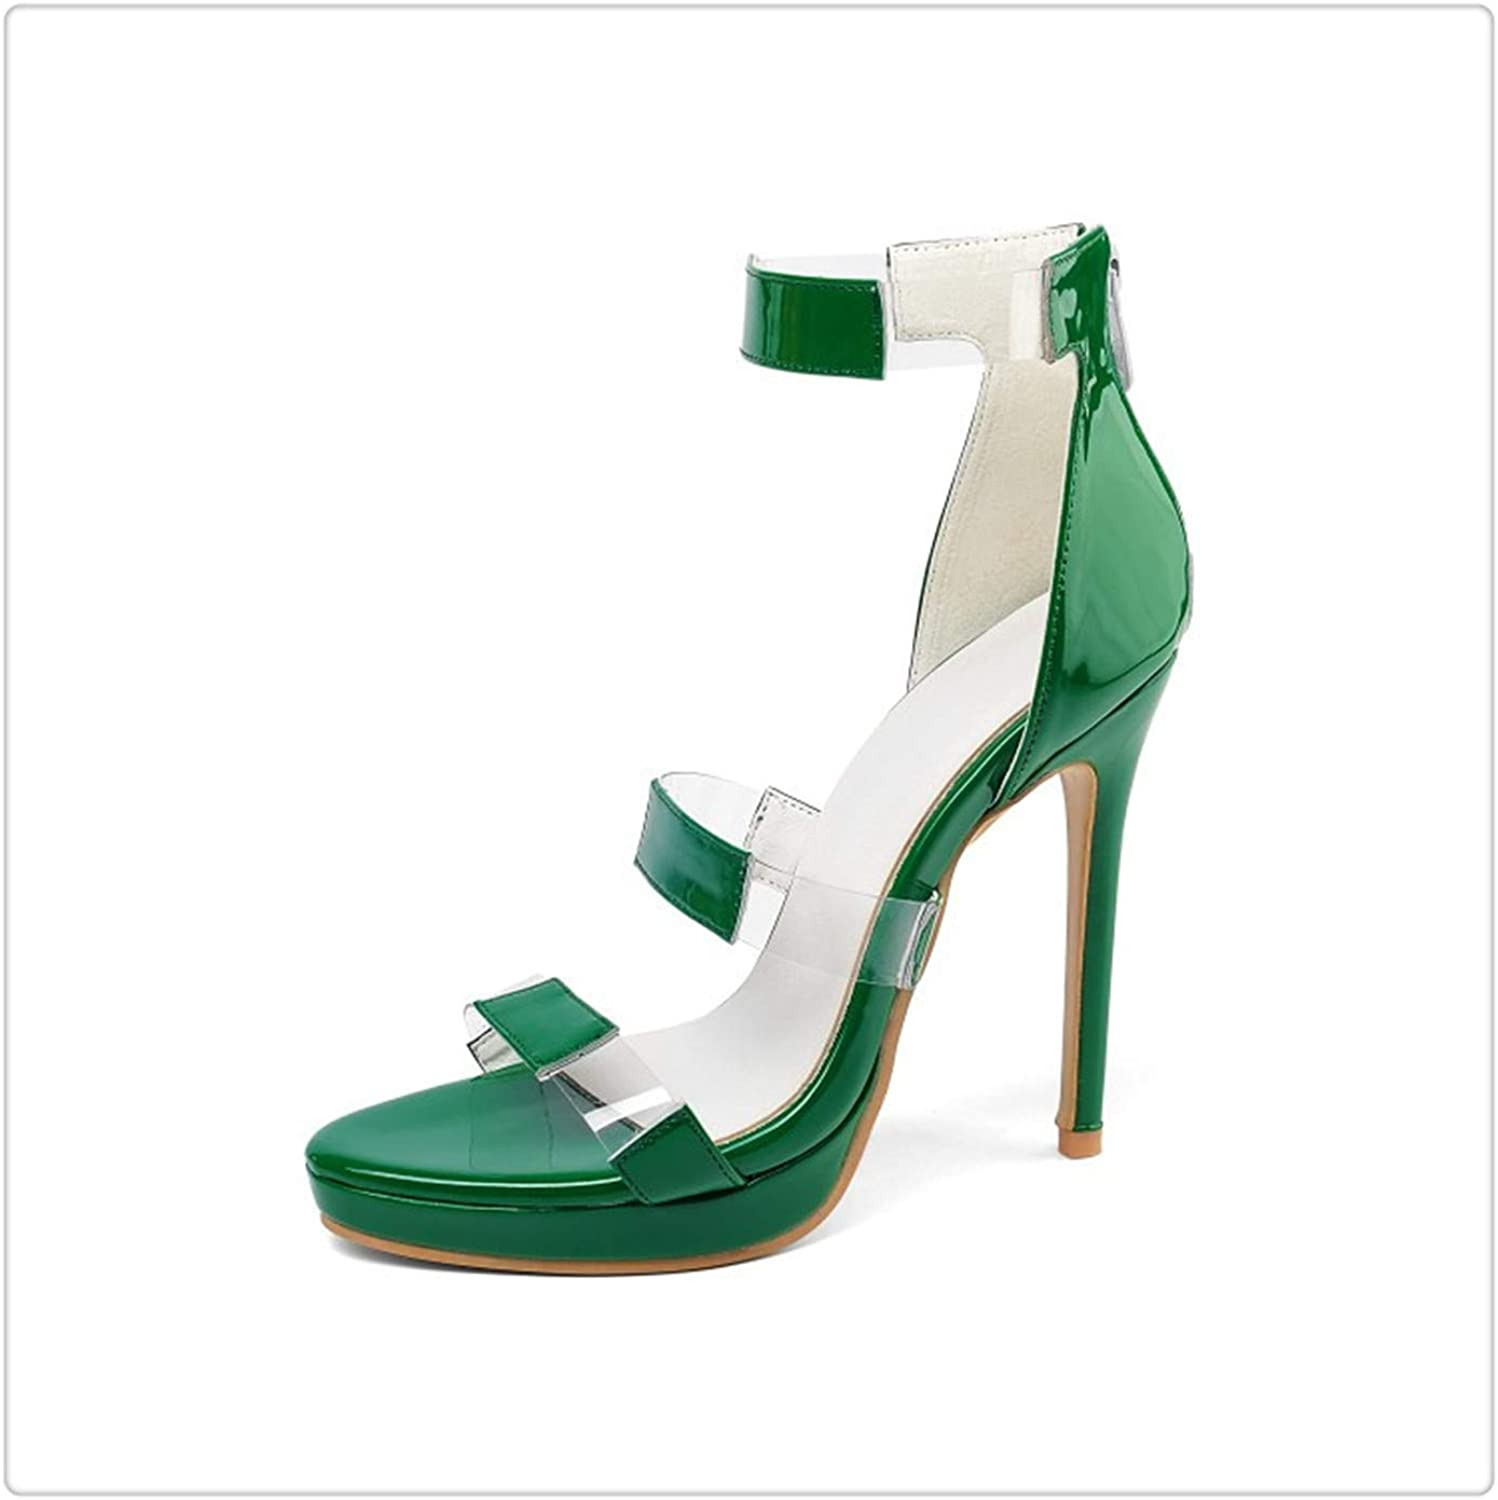 ZXCVB& High Heel Sandals Women Open Toe Ankle Warp Back Zip Patent Leather Party shoes